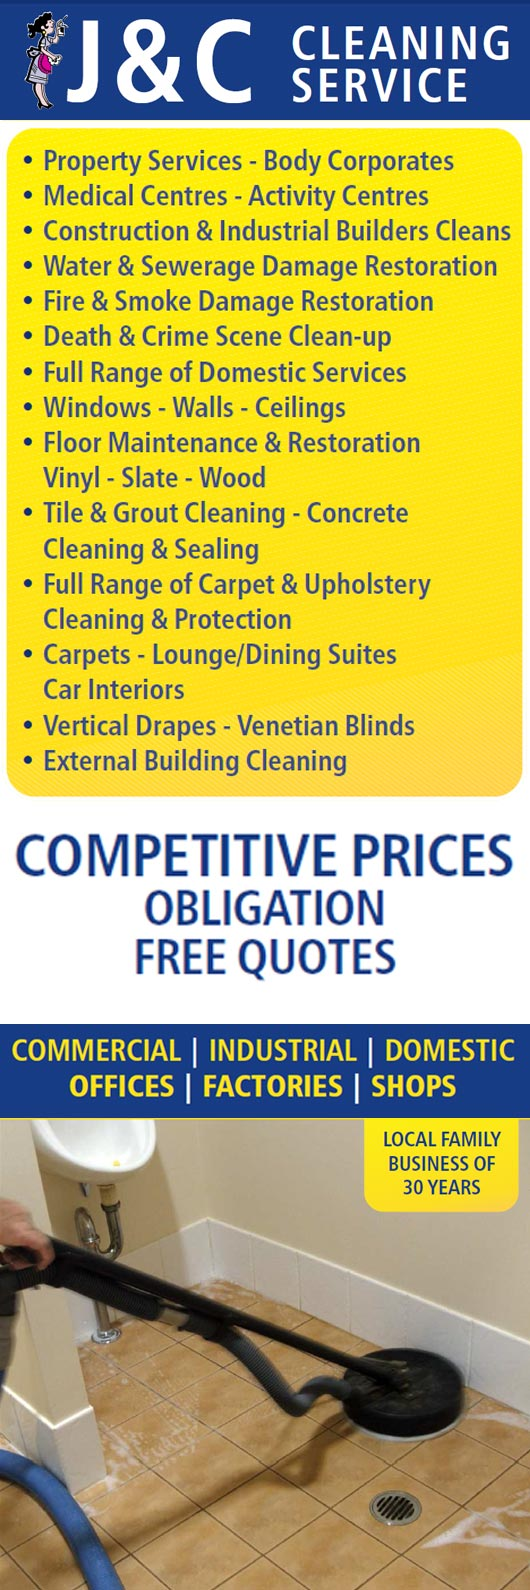 J c cleaning service promotion